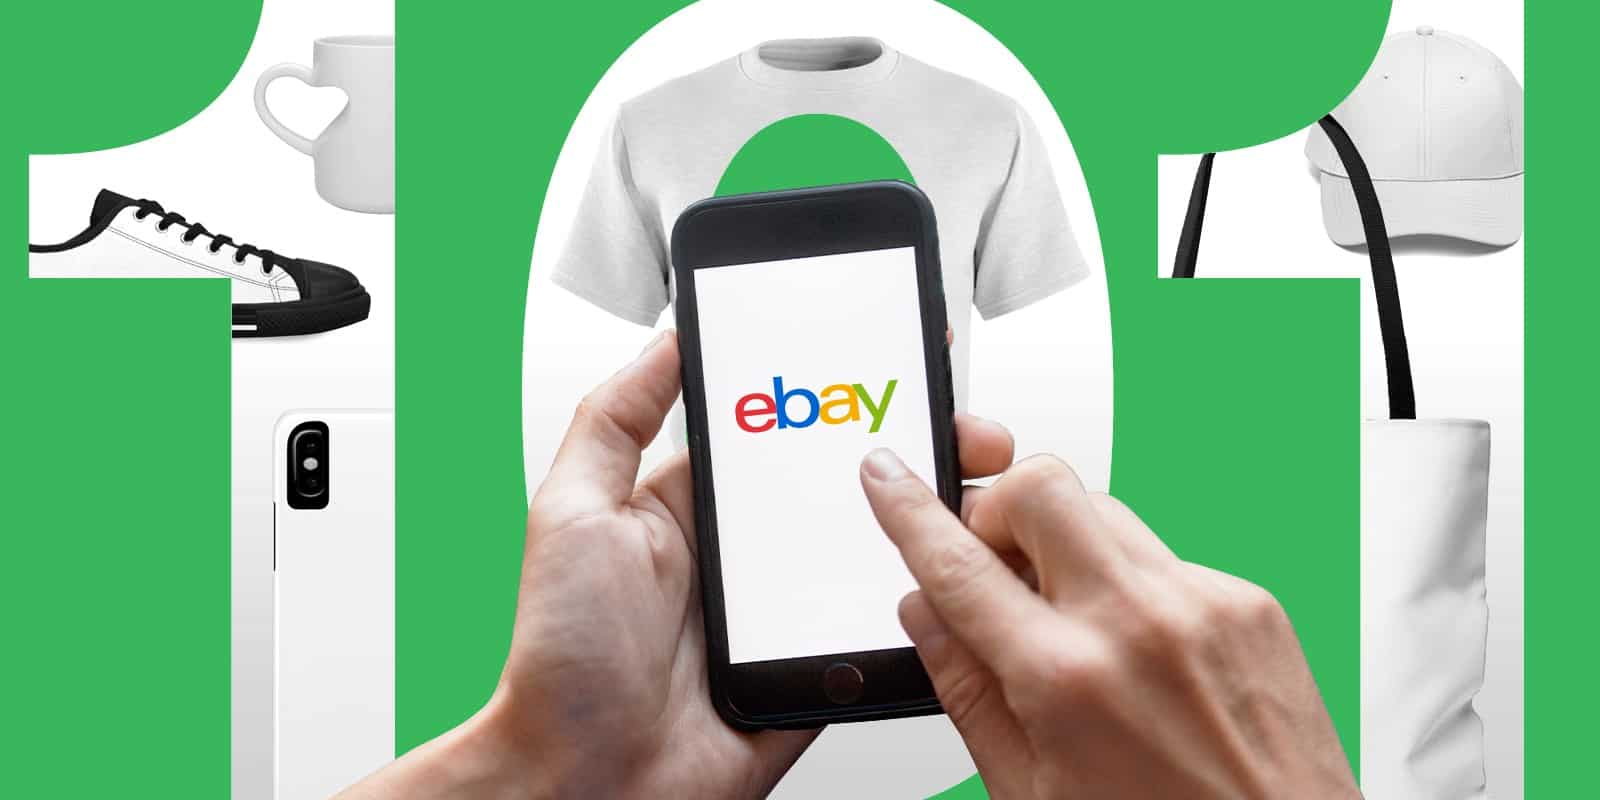 101 Product ideas to sell on eBay